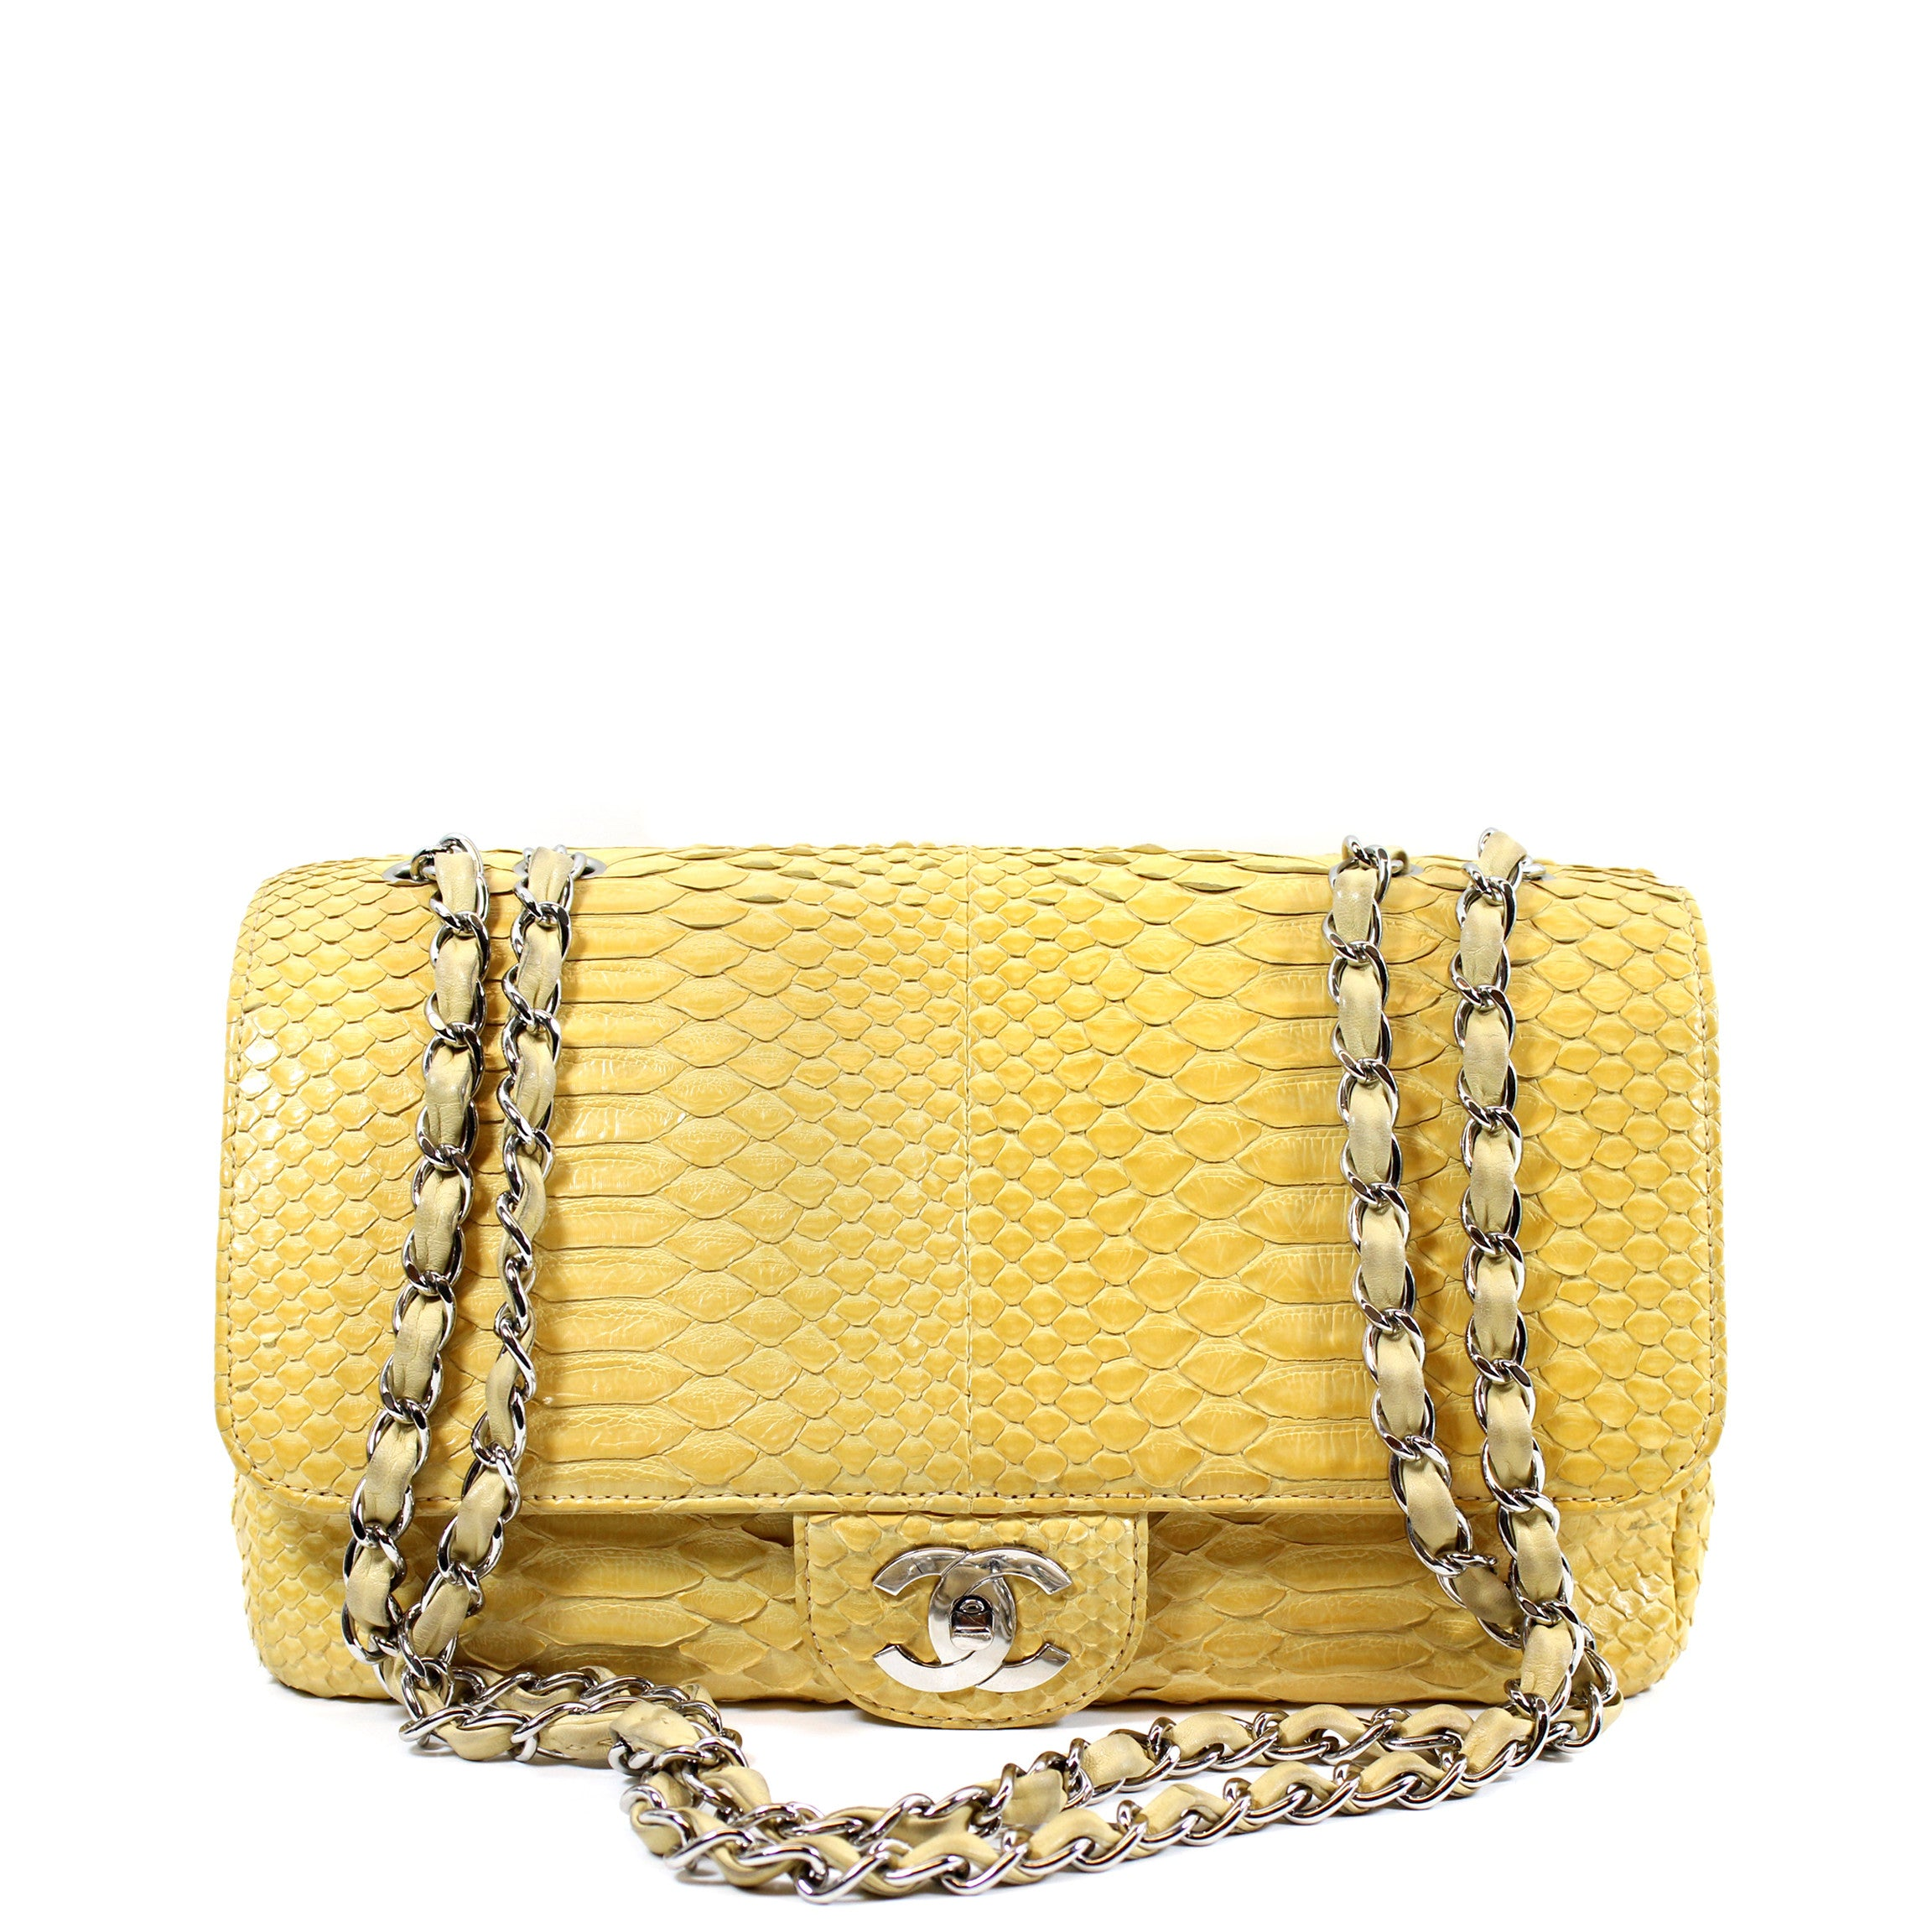 Chanel Yellow Python Bag